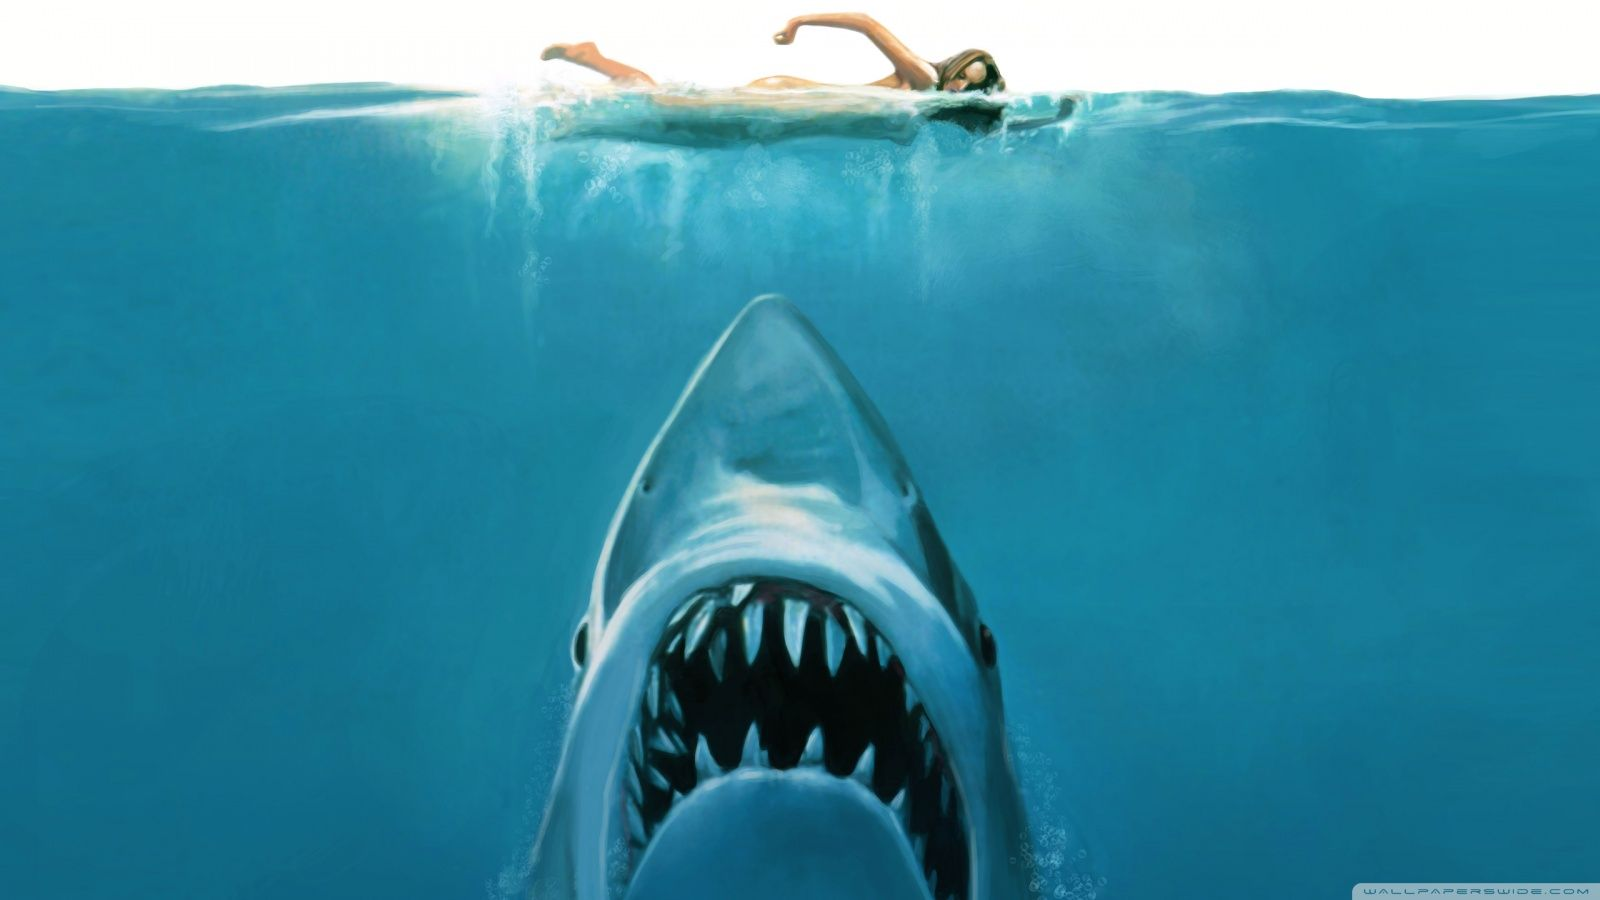 Jaws Wallpaper Widescreen | Wallpapers For Desktop | Pinterest | Jaws Movie  And Wallpaper